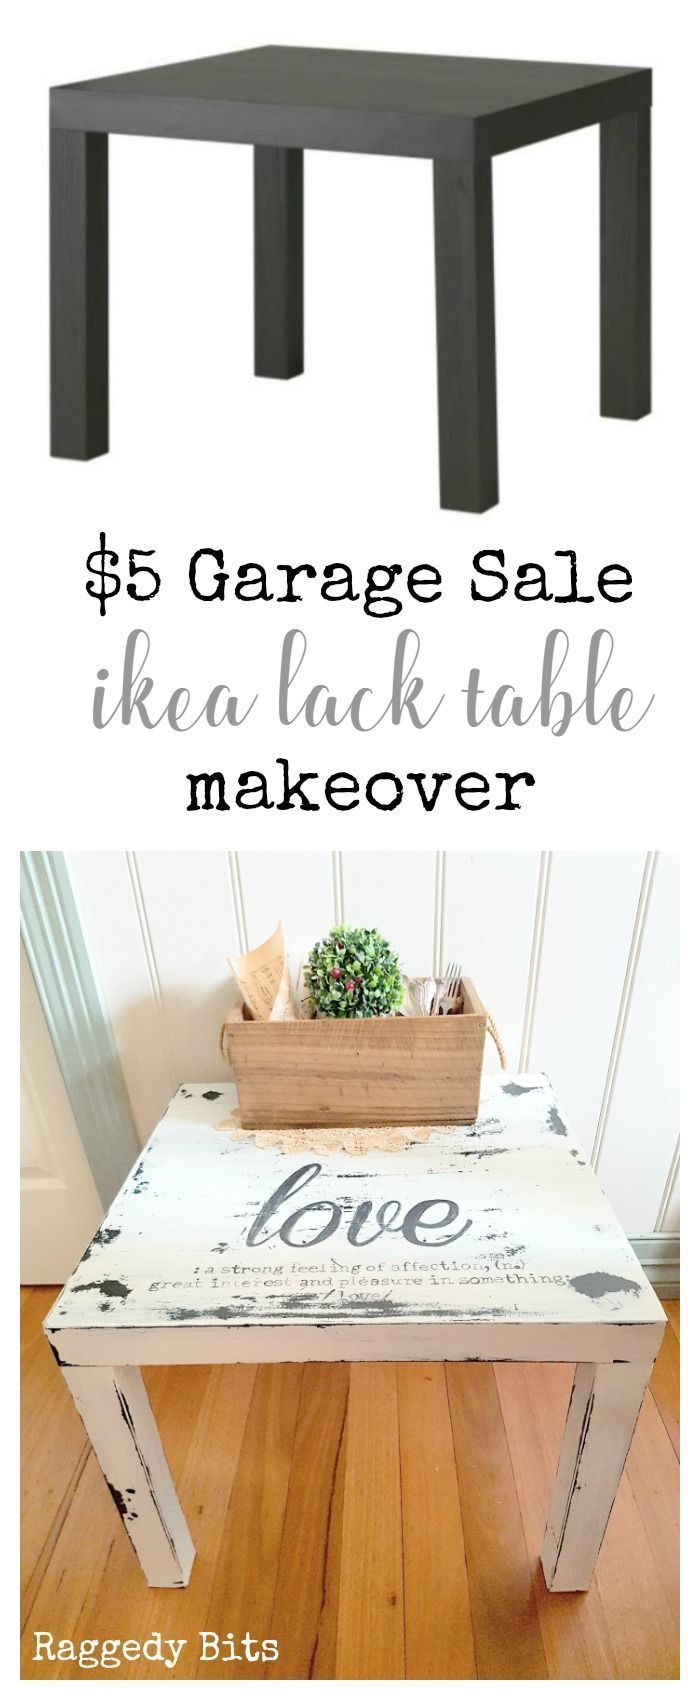 the 5 garage sale ikea lack table make over